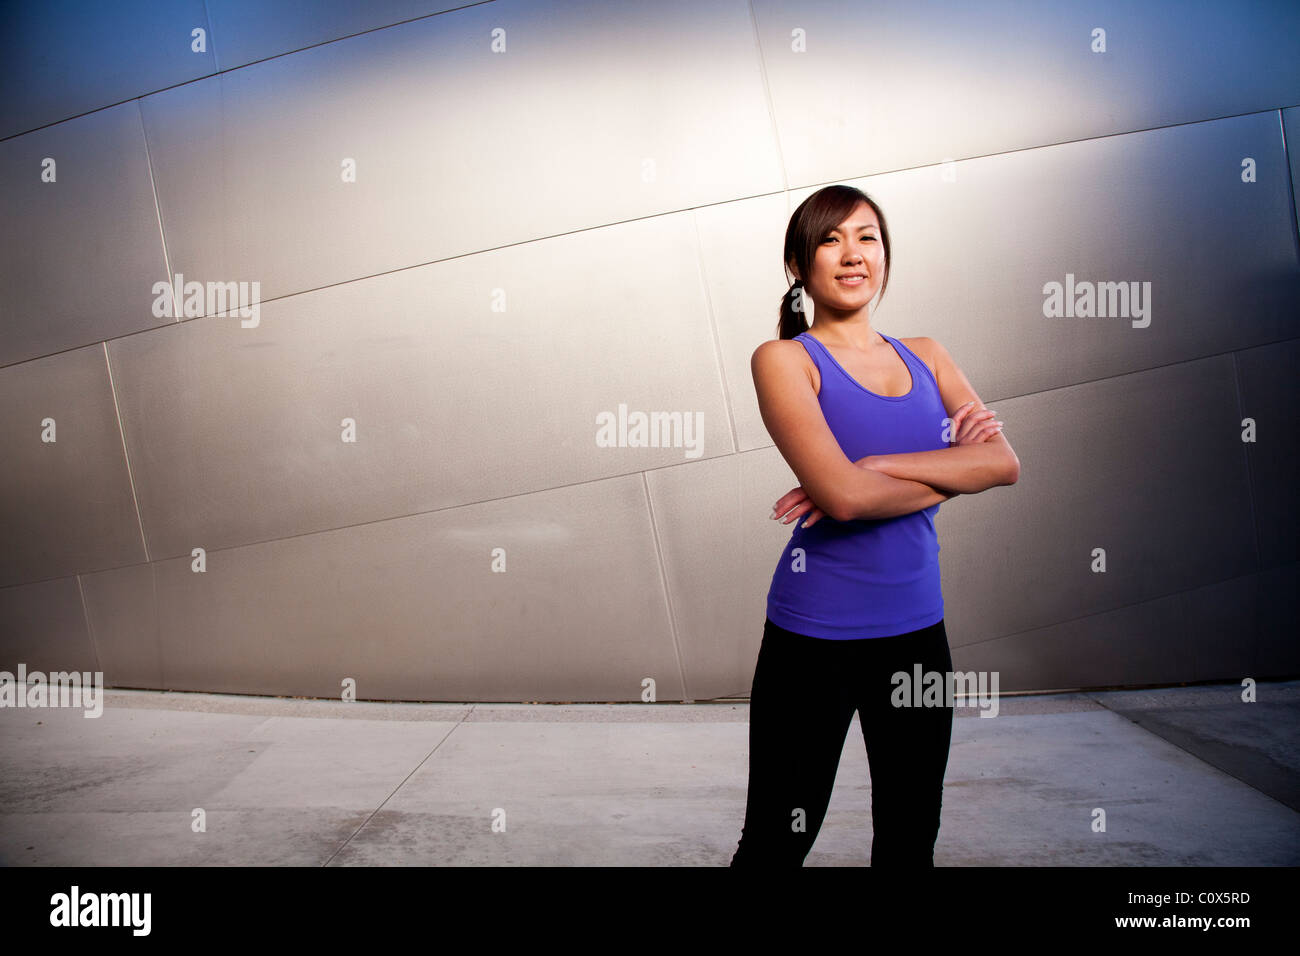 Asian American female runner resting with arms folded standing in front of metal clad wall.  Purple tank top and - Stock Image